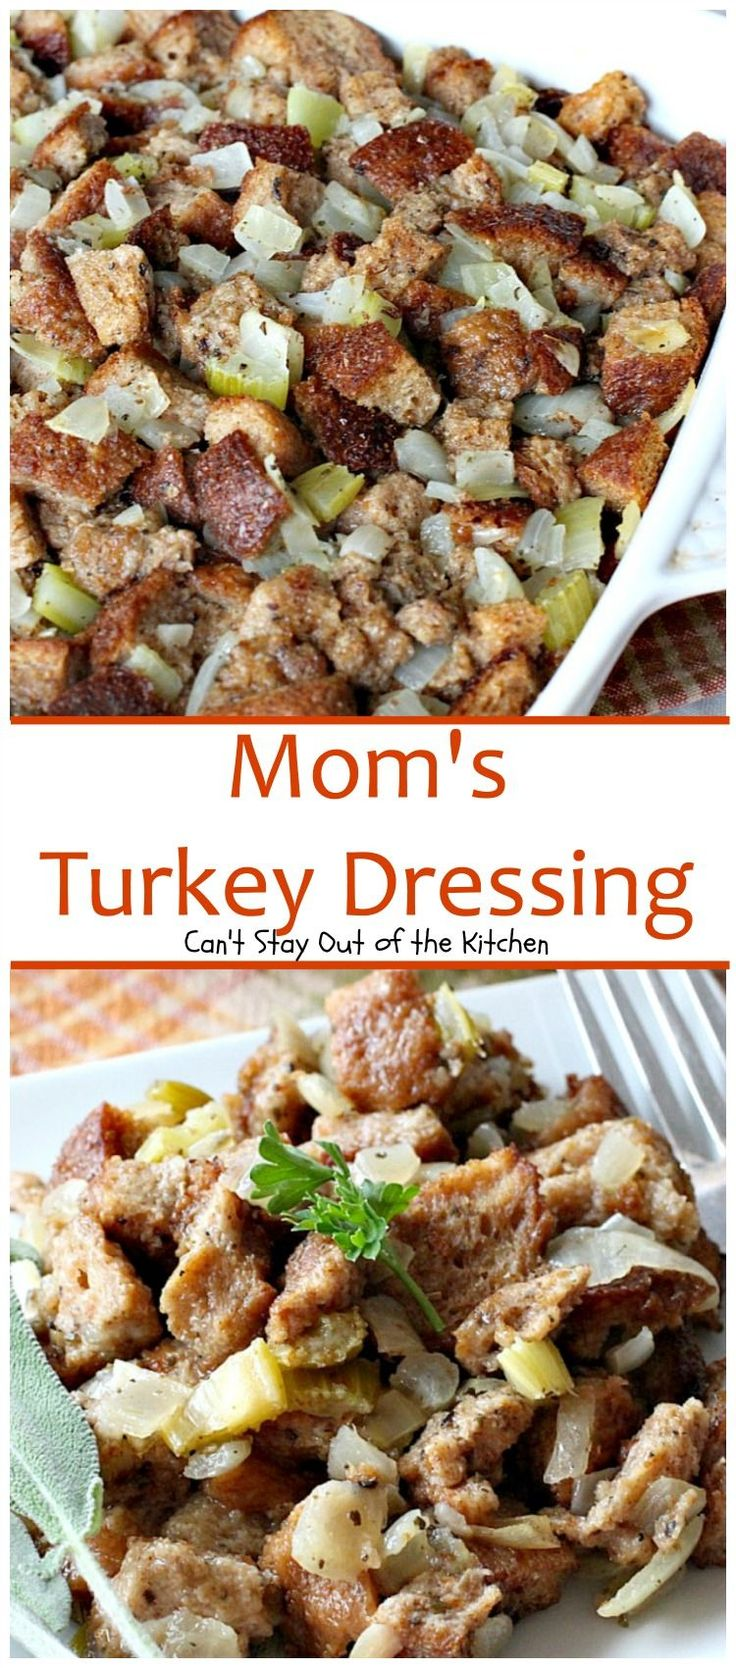 Favorite turkey dressing recipe with stale bread, celery, onions, sage, and turkey broth. Quick and easy and very delicious!